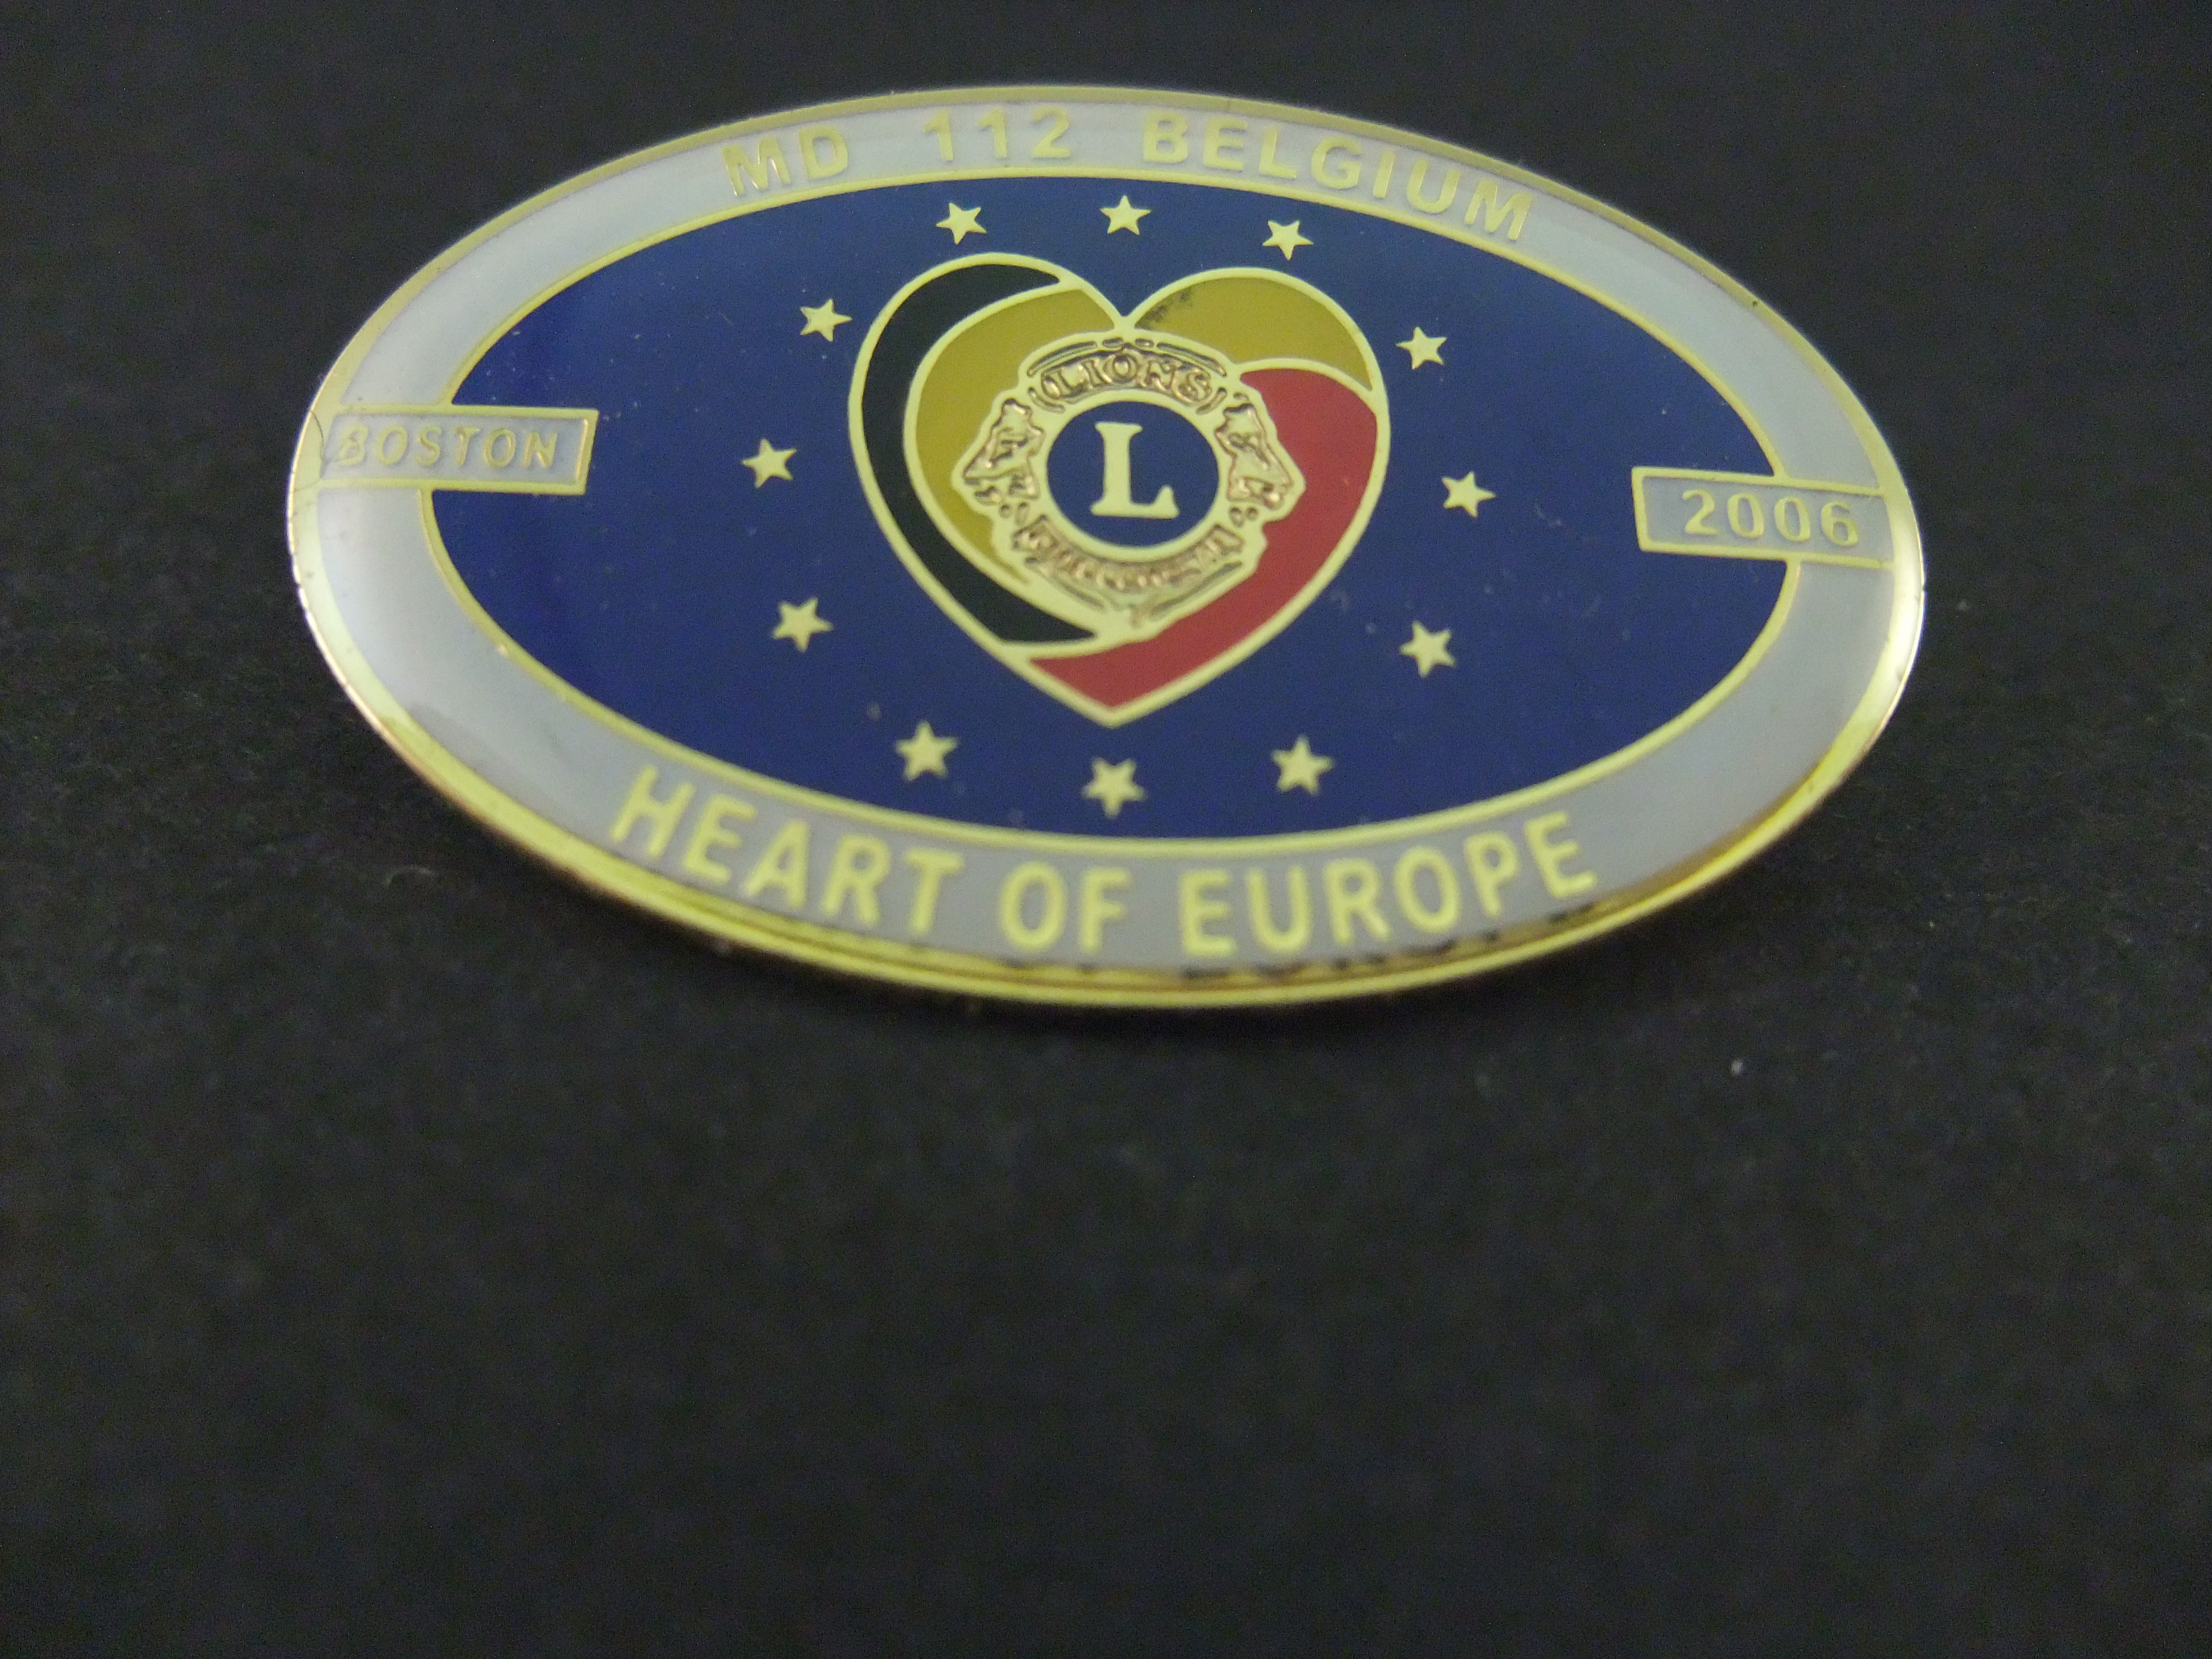 Lions Club International,MD 112 Belgium heart of Europe